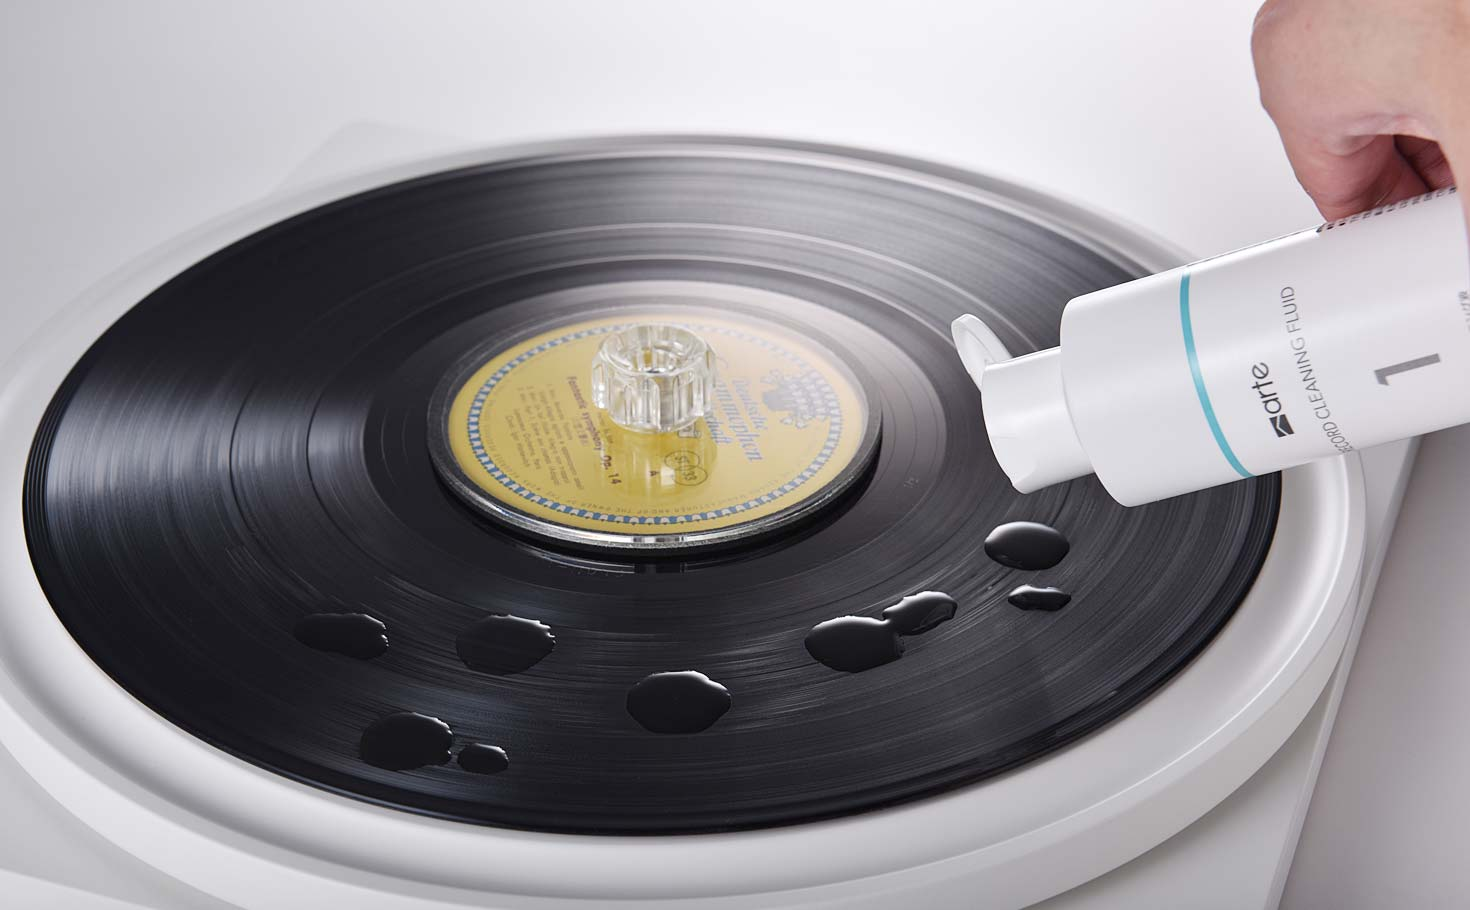 arte record cleaner